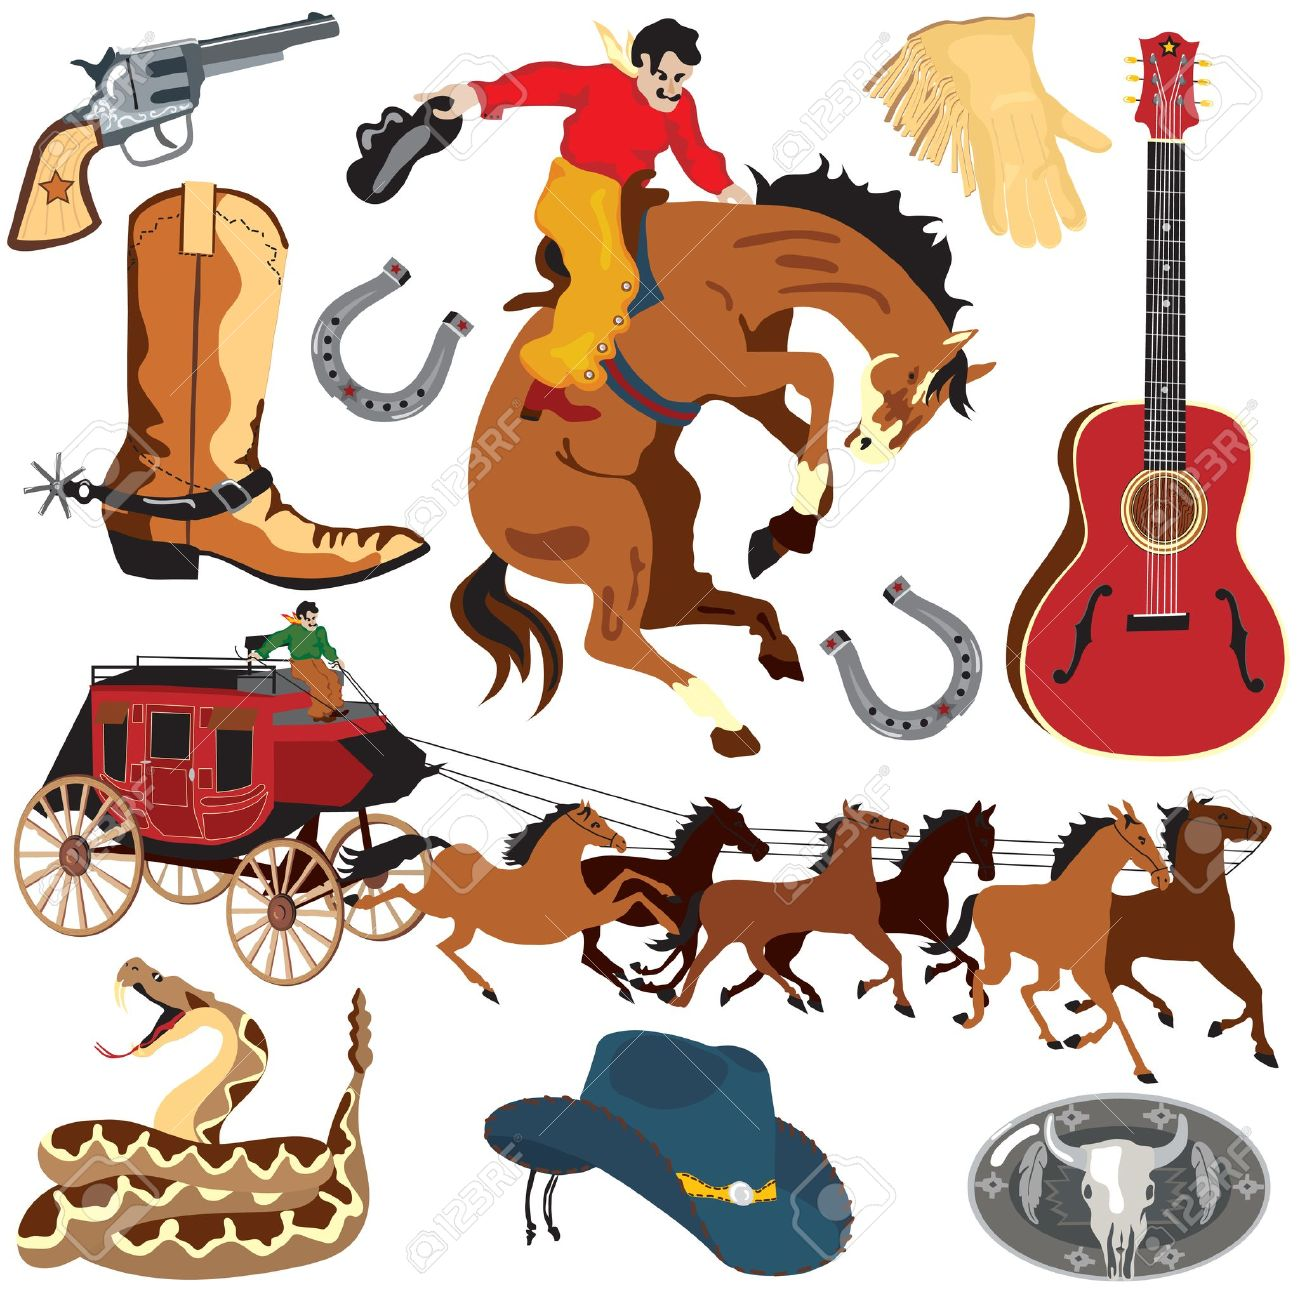 Free Western Clipart - Western Clipart